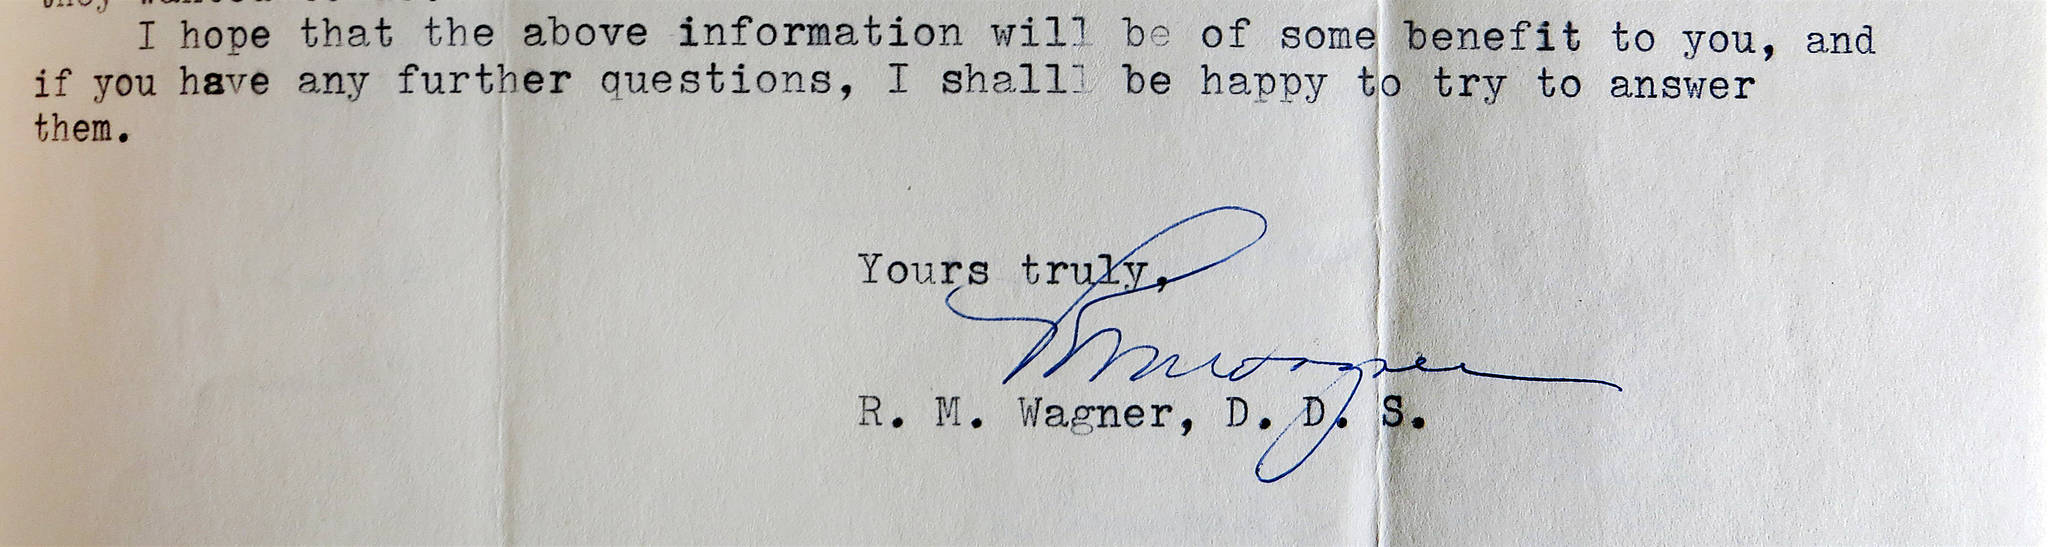 Letter courtesy of Fair family collection  Dr. Wagner closed his April 1960 letter to Dr. Calvin Fair on a positive note.